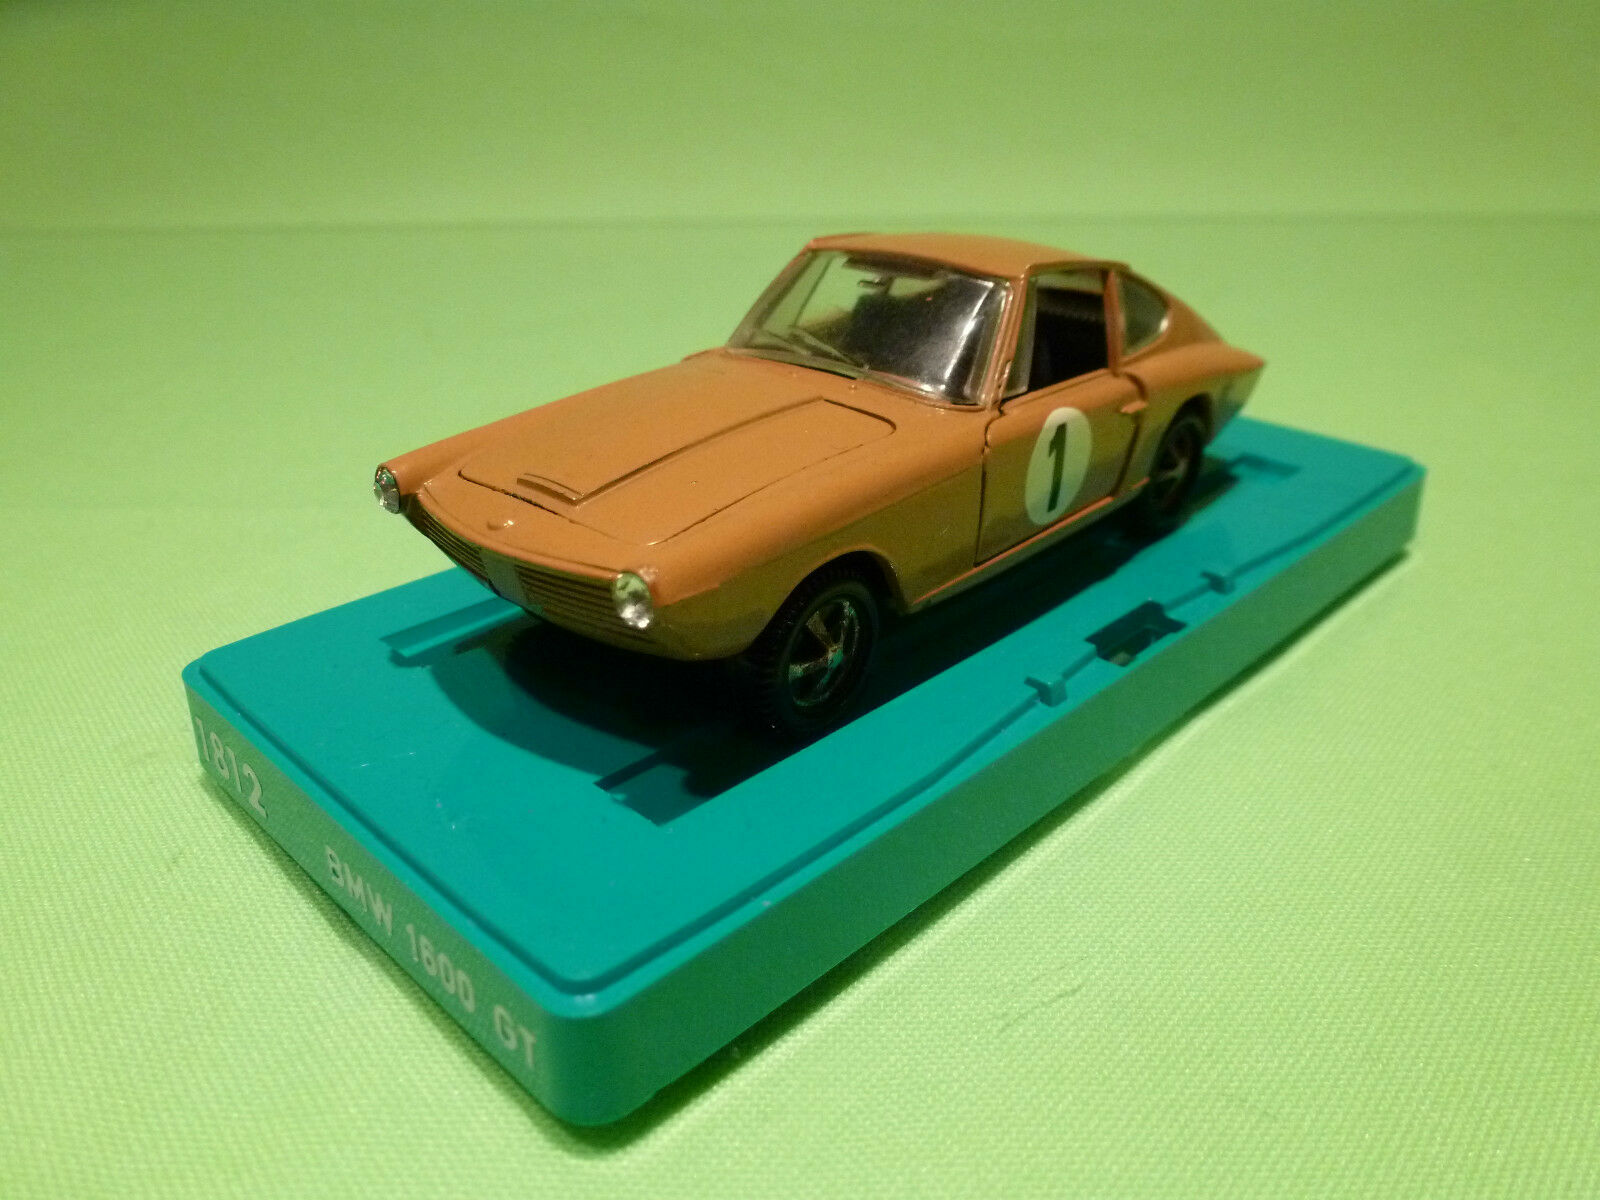 MARKLIN 1812 BMW 1600 GT - OCRE No 1 - 1 43 - RARE SELTEN - EXCELLENT CONDITION